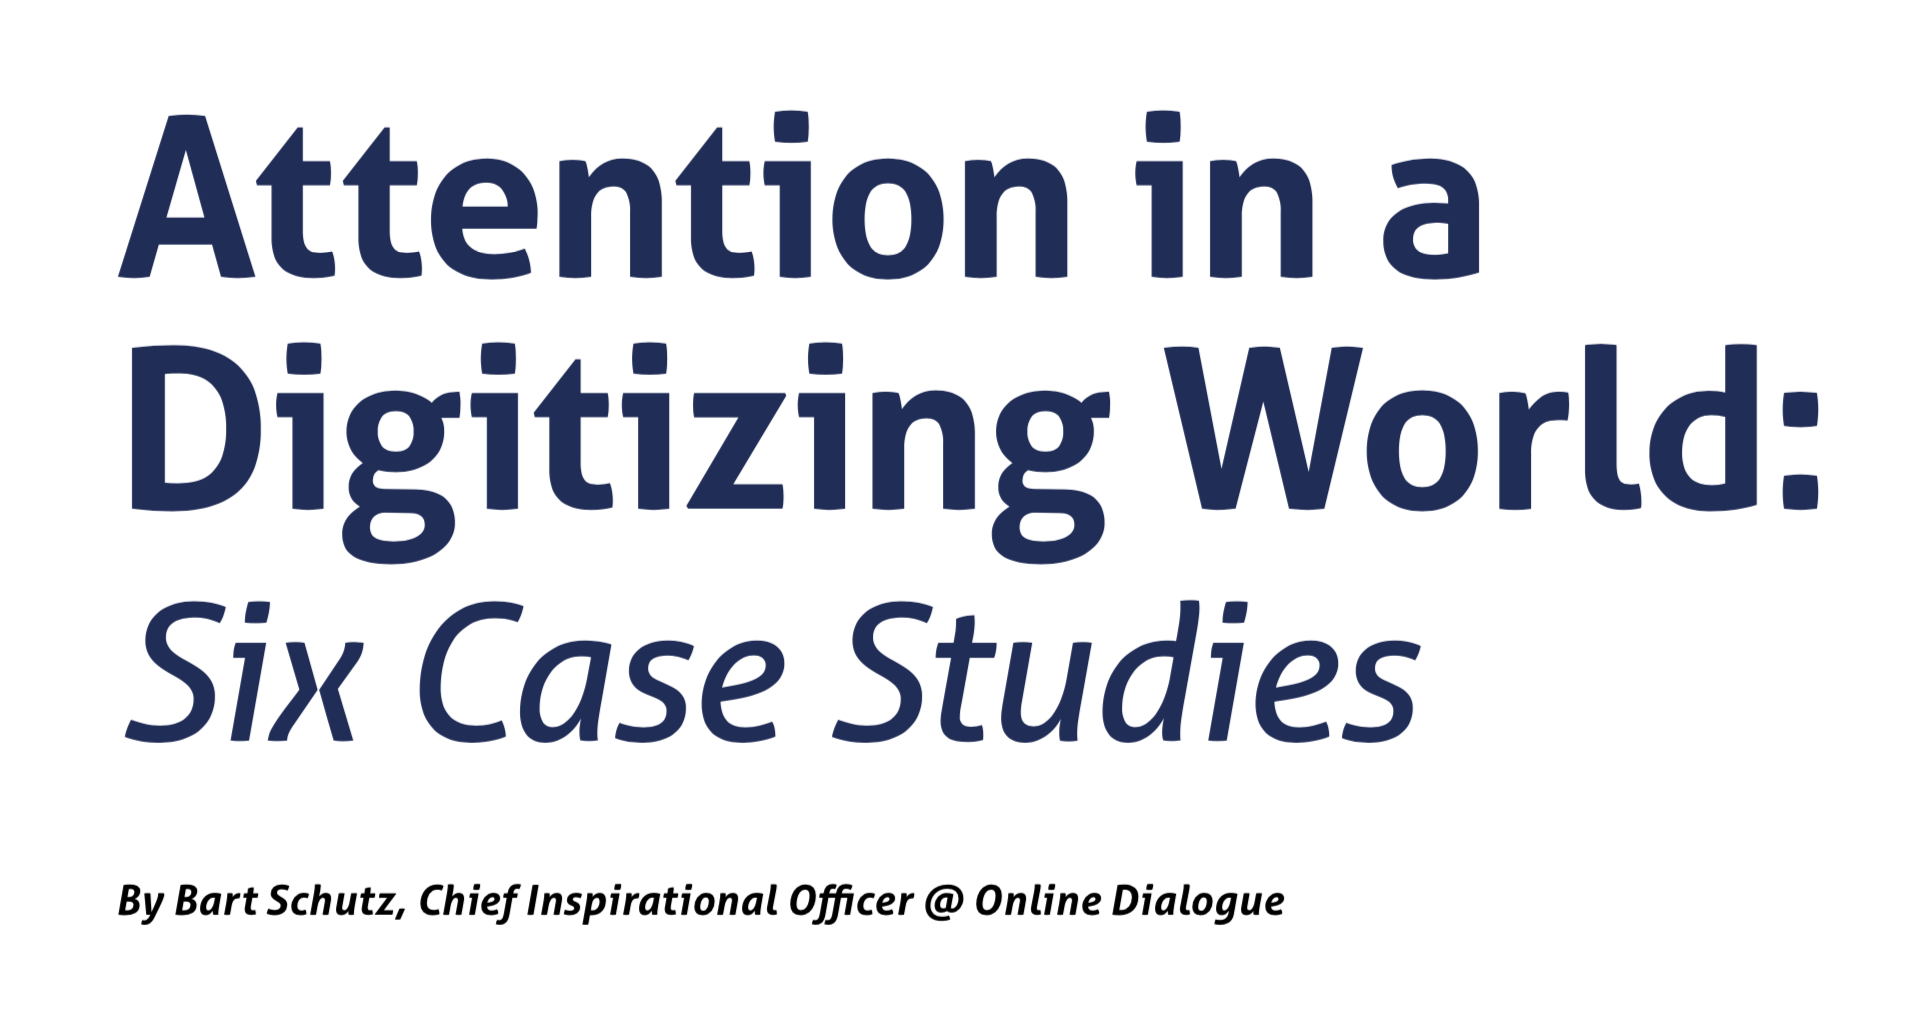 Attention in a Digitizing World: Six Case Studies